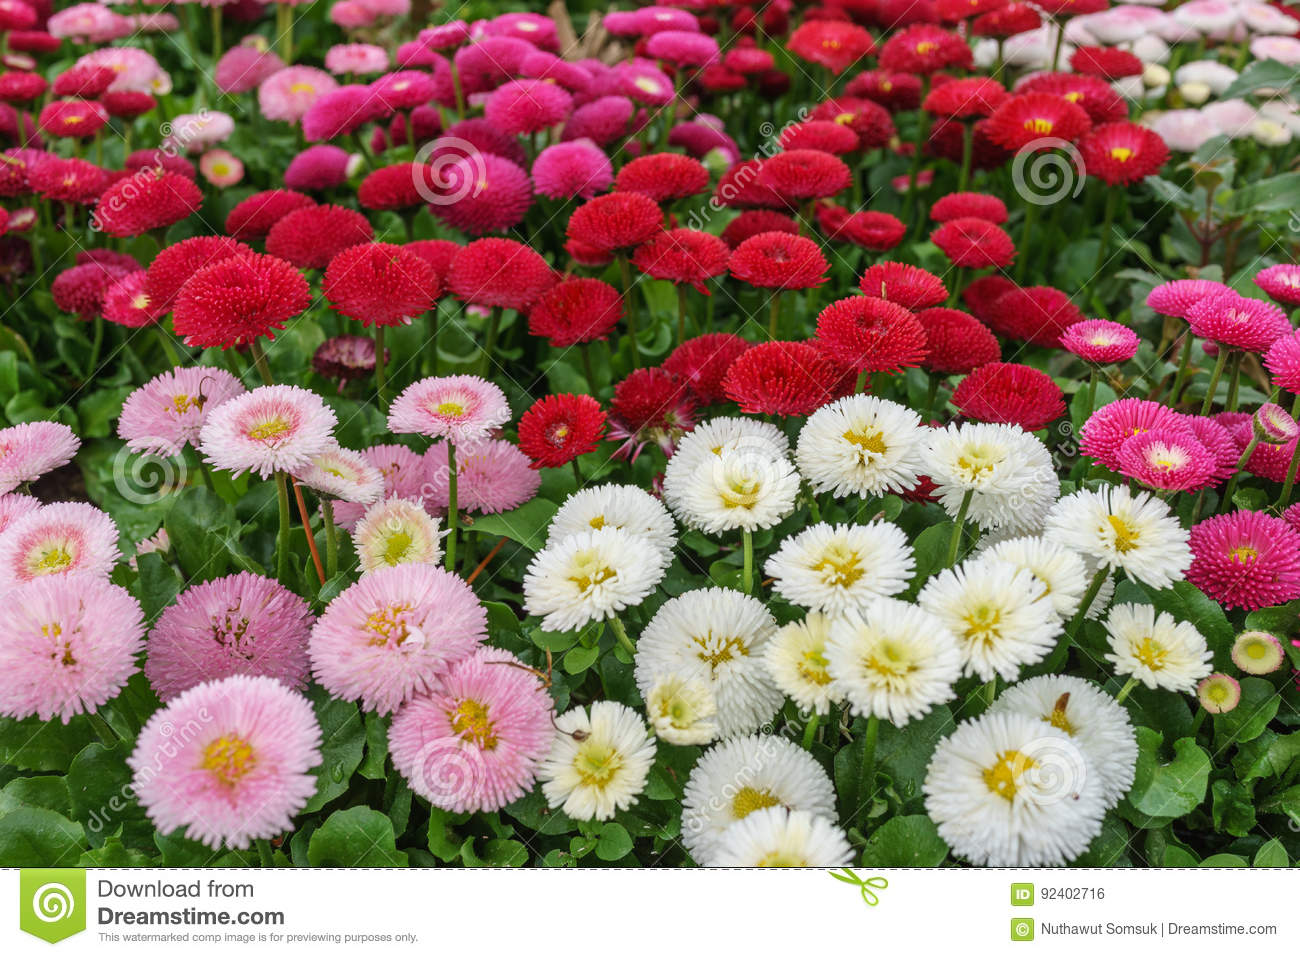 Pink white and red english daisy flower in outdoor park day lig download pink white and red english daisy flower in outdoor park day lig stock photo izmirmasajfo